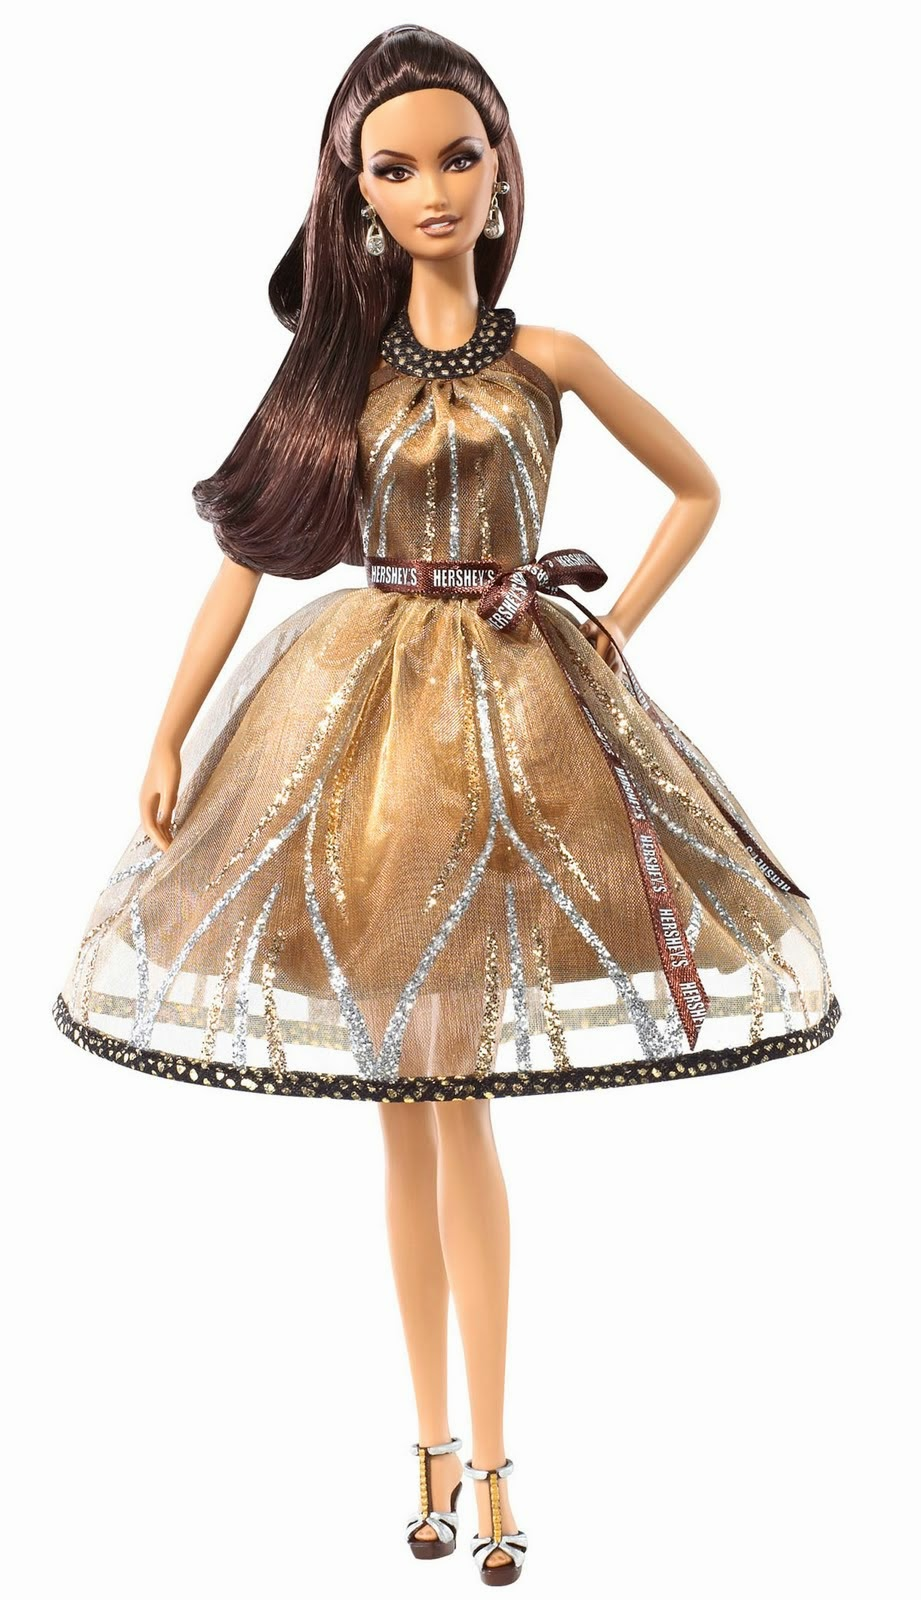 Barbie Doll Fashion HD Wallpapers Free Download